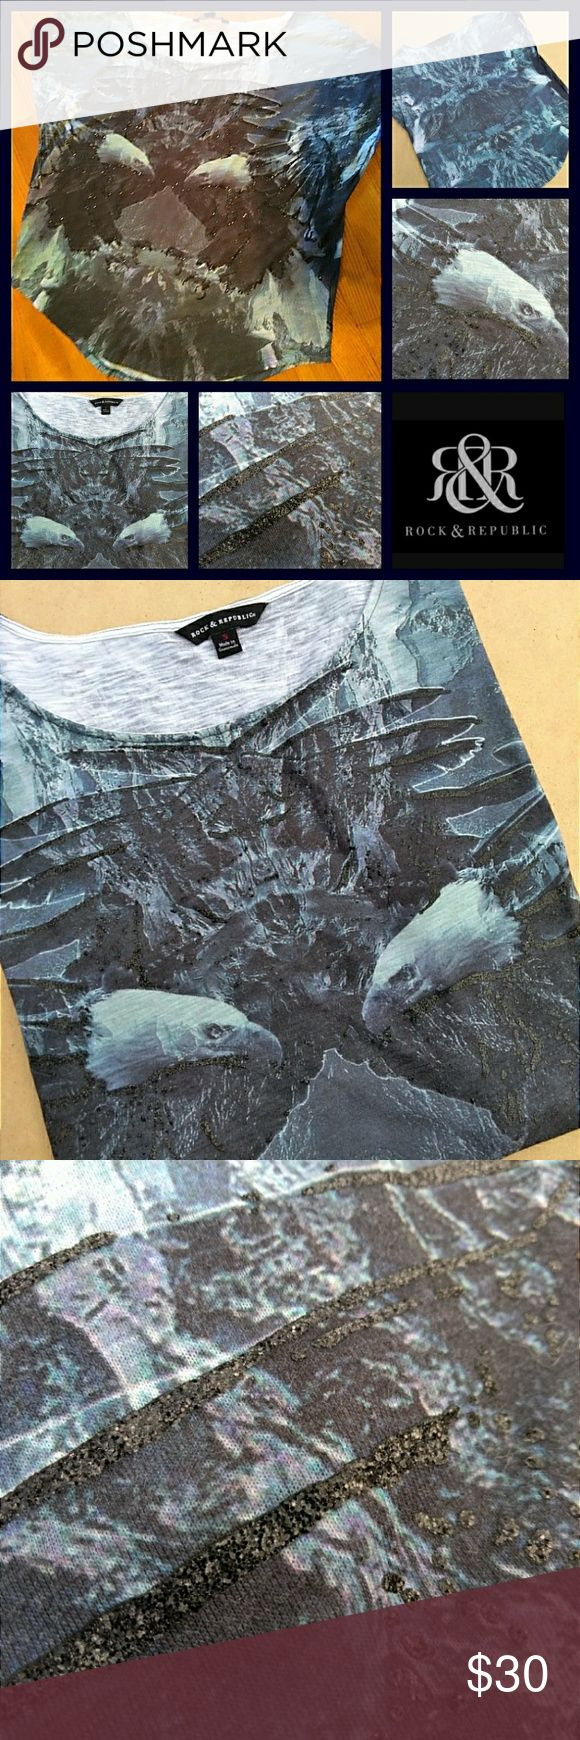 🦅Rock & Republic Bald Eagle Sparkly Blouse🦅 NWOT! Rock & Republic. This blouse is so cool.  Beautiful screen print Eagles.  There are parts on the shirt with a layered glittery effect. Slight bat wing type sleeves.  The sleeve holes are cut like slits almost.  Very cool look.  Raw edges on the sleeves.  See pic 5. Never worn.  Perfect condition.  Size S.  Slightly Oversized. Enjoy! Rock & Republic Tops Blouses